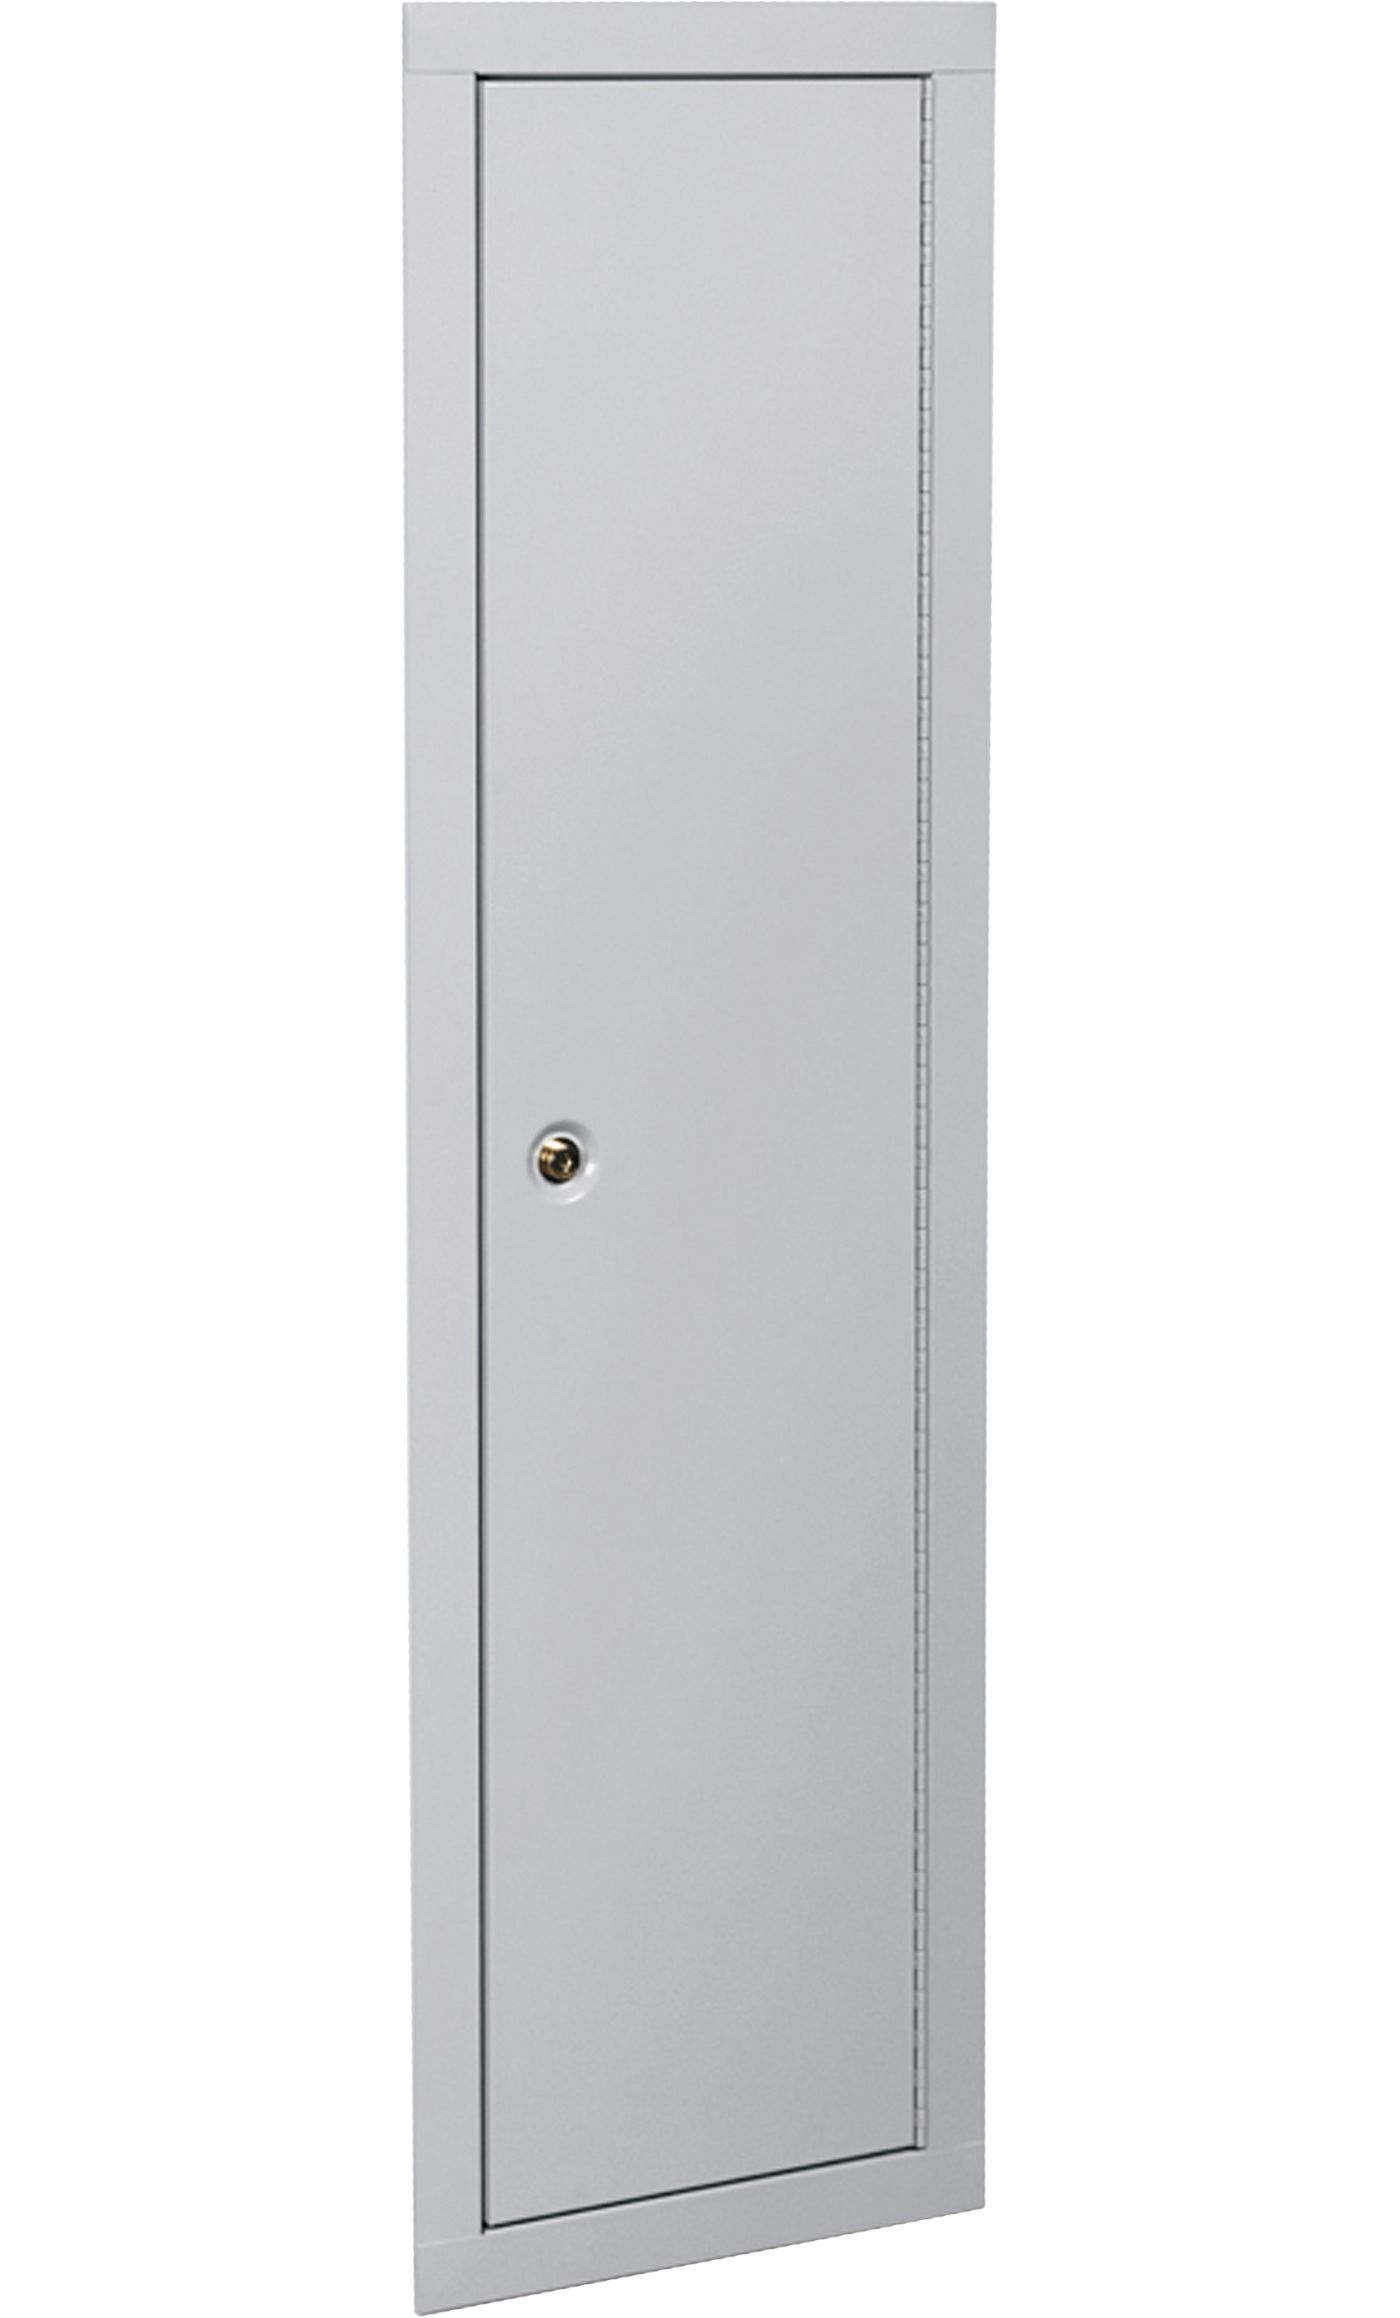 Stack-On Full Length In-Wall Security Cabinet